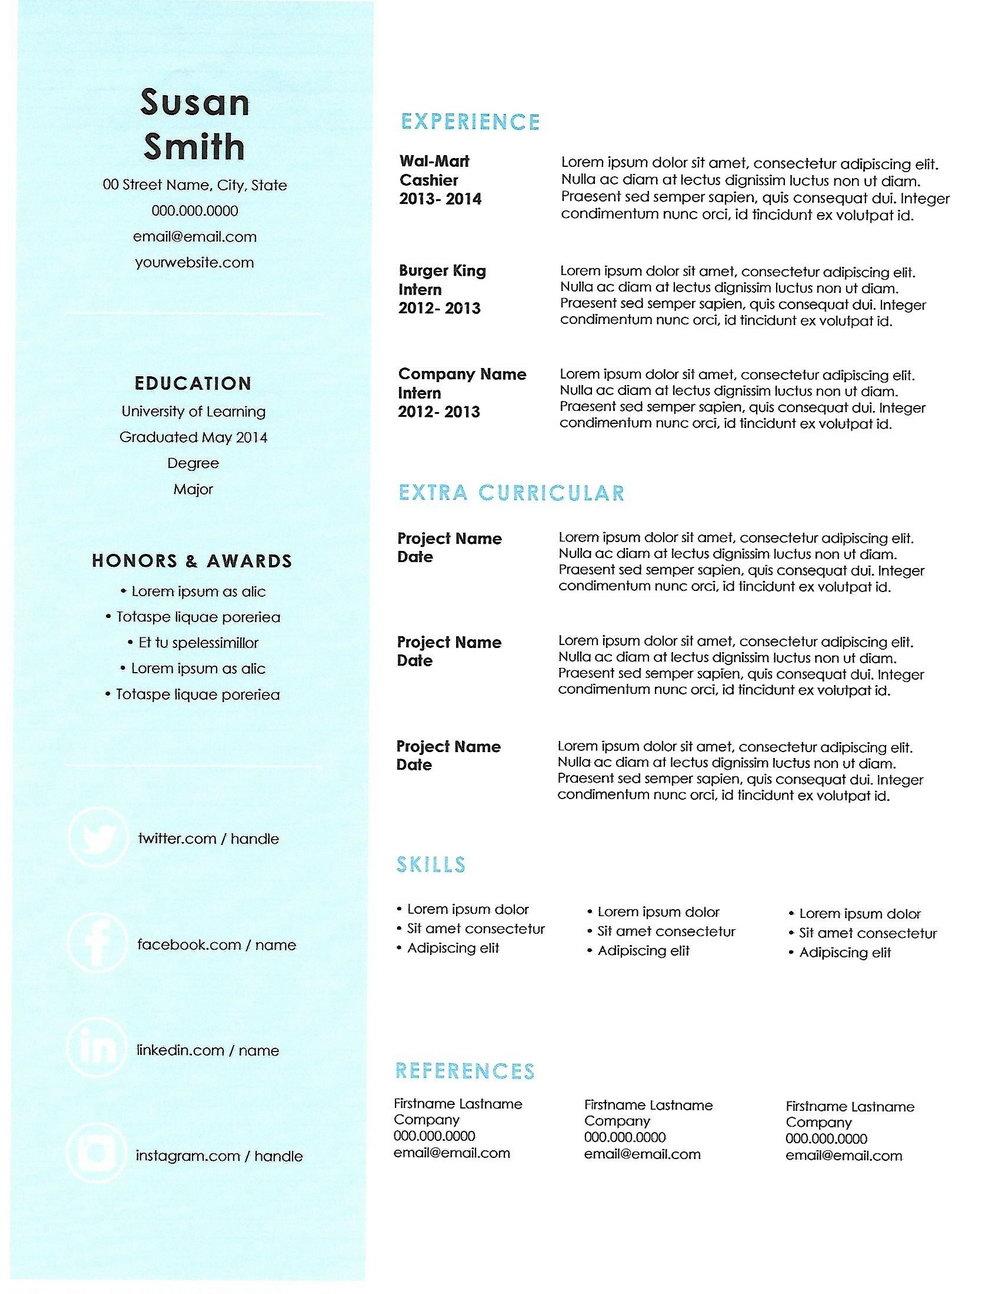 Free Resume Searches For Employers India